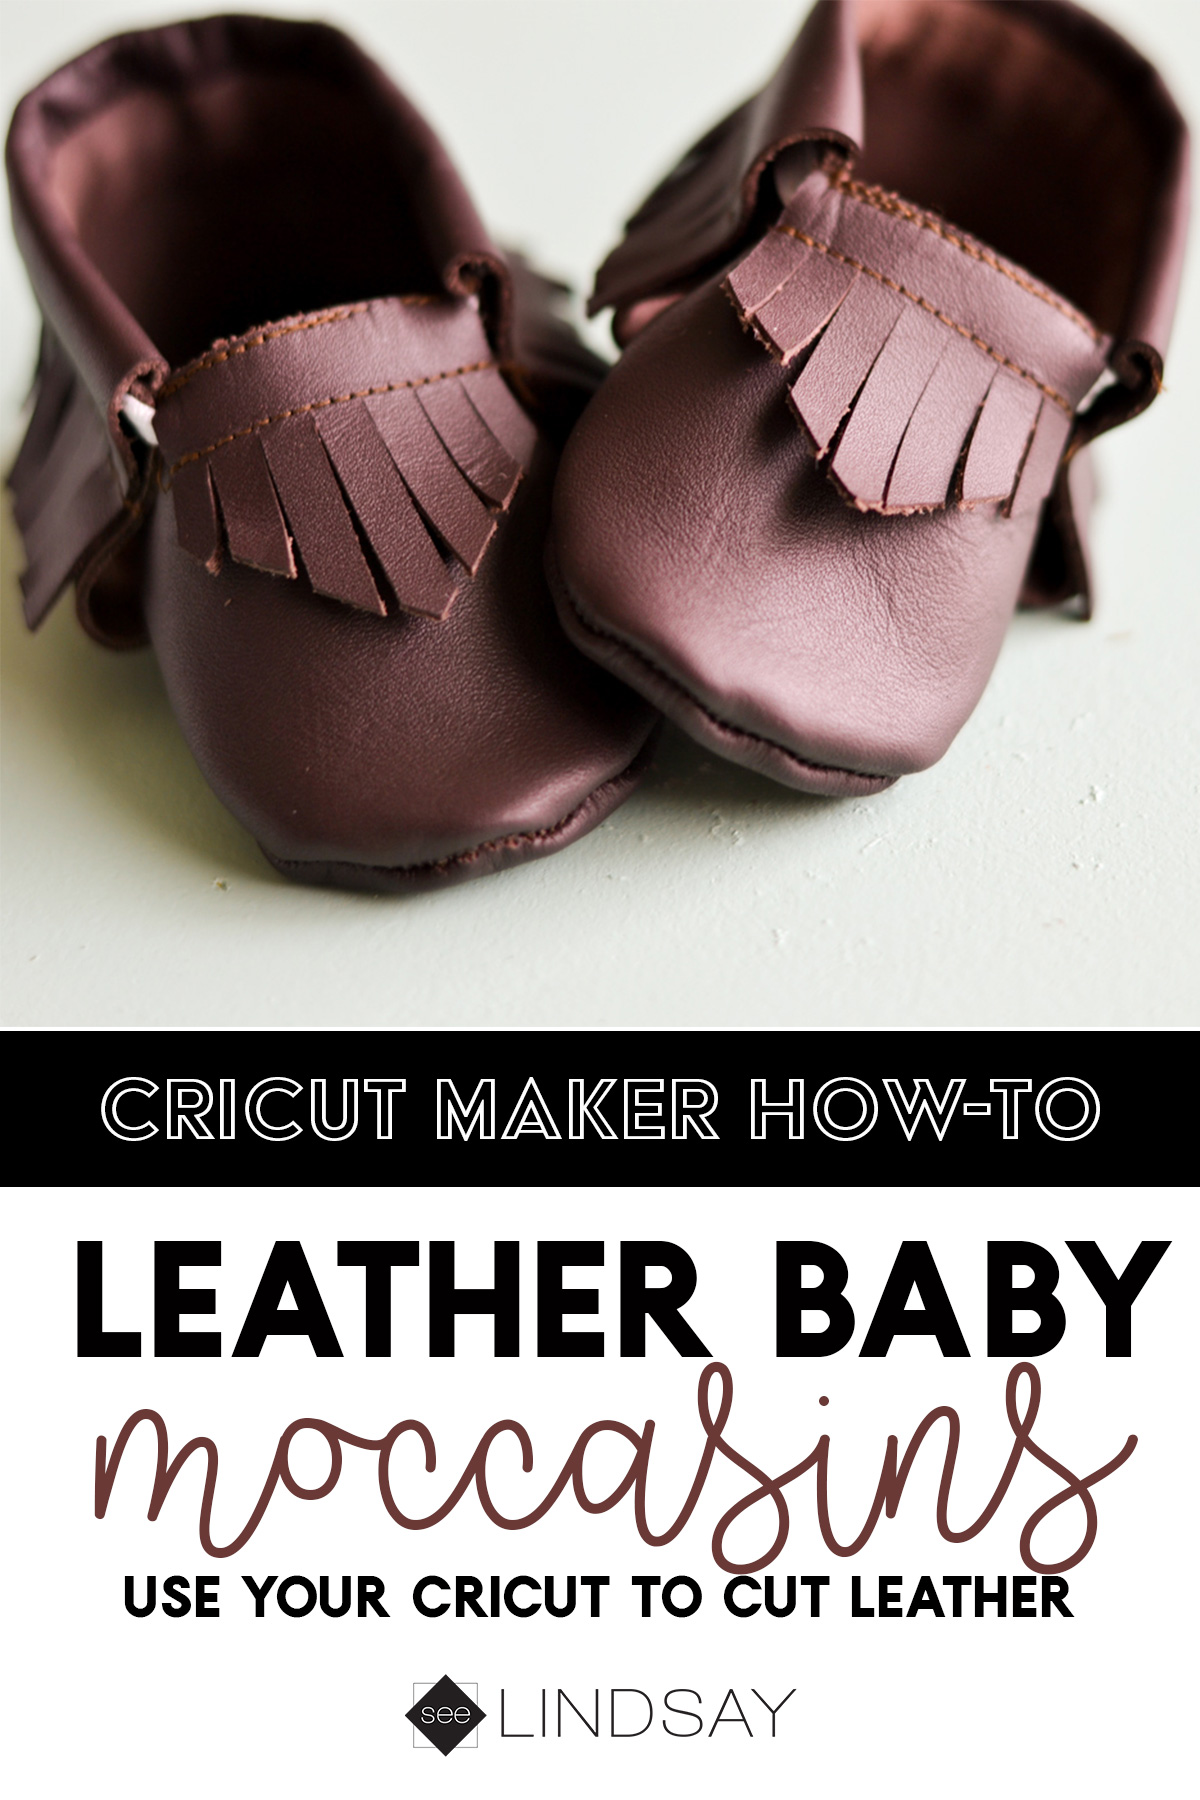 Learn how to cut leather using your Cricut. Use your Cricut Maker to make these